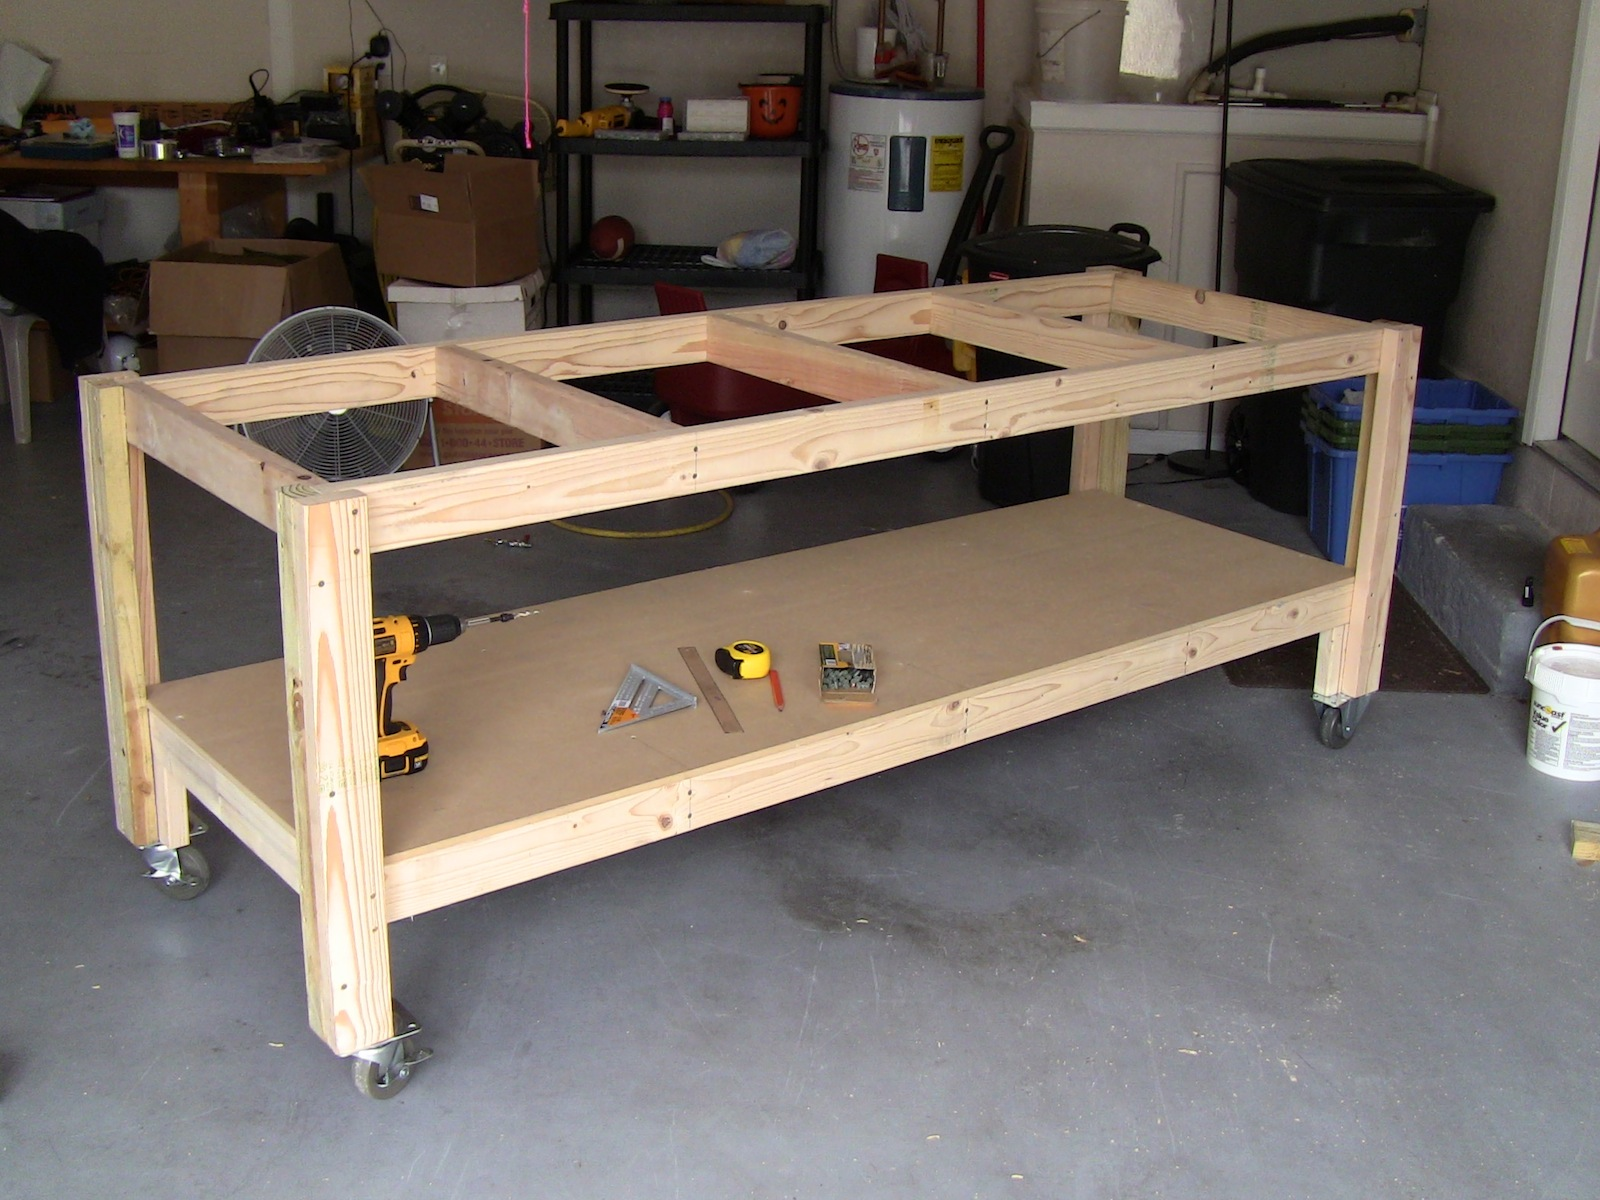 Step by step DIY Woodworking Plans